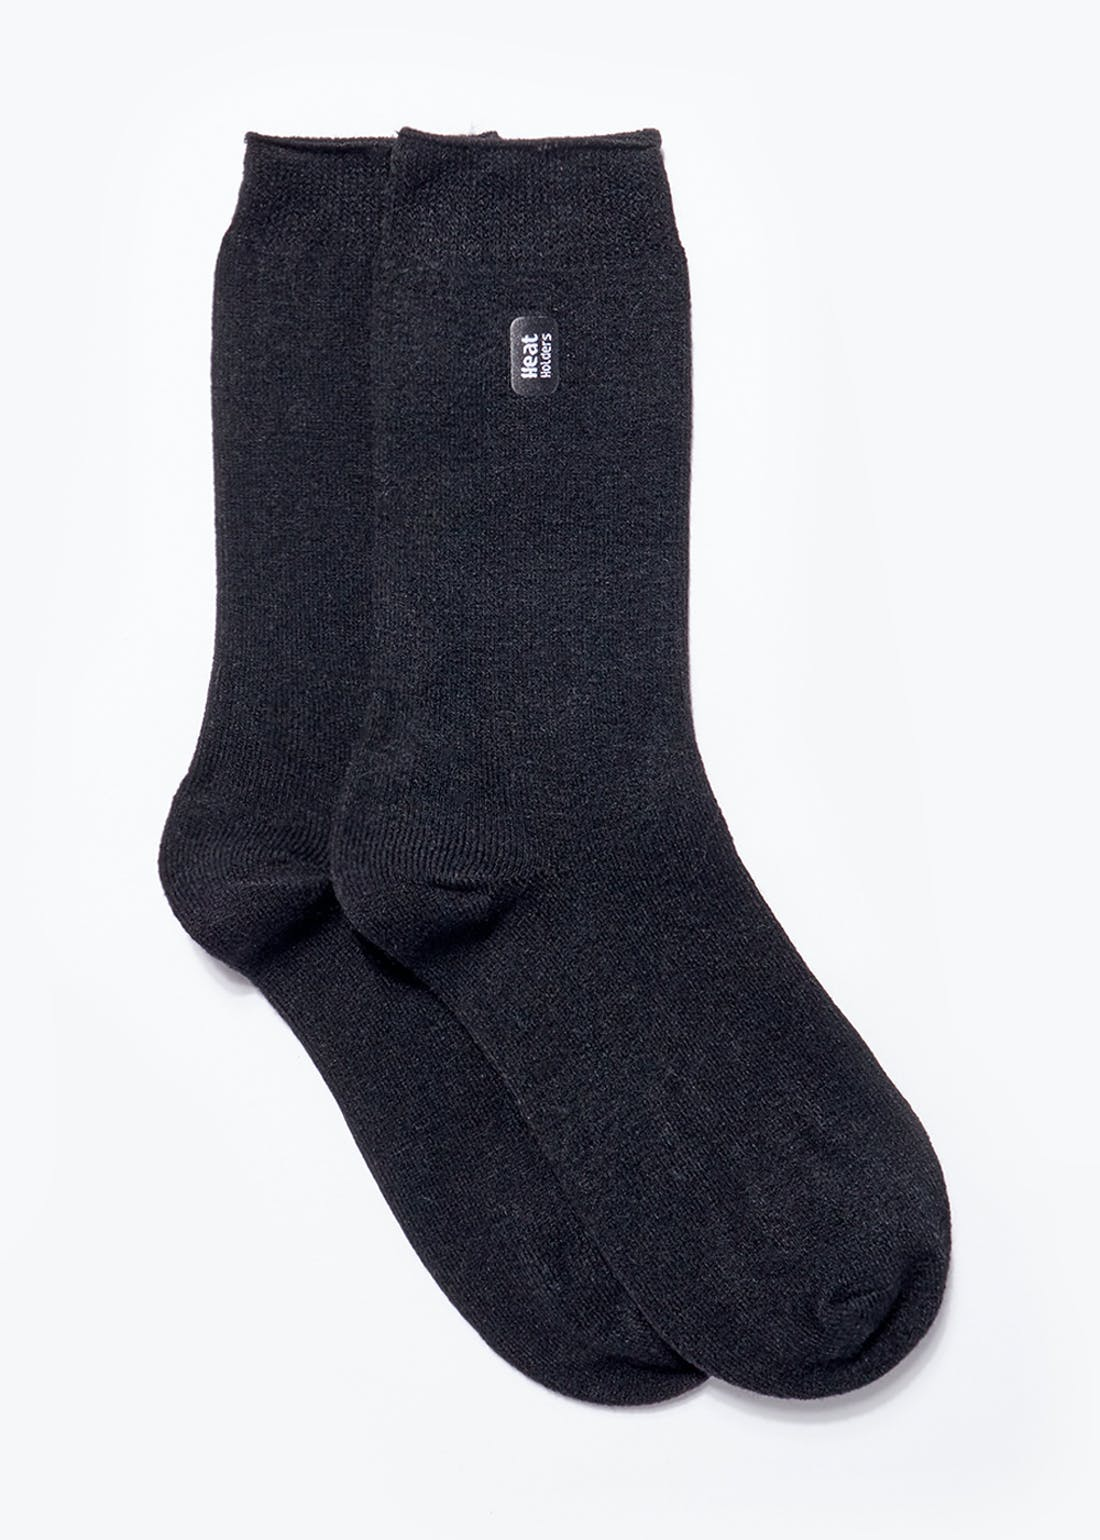 Heat Holders Ultra Lite Thermal Socks